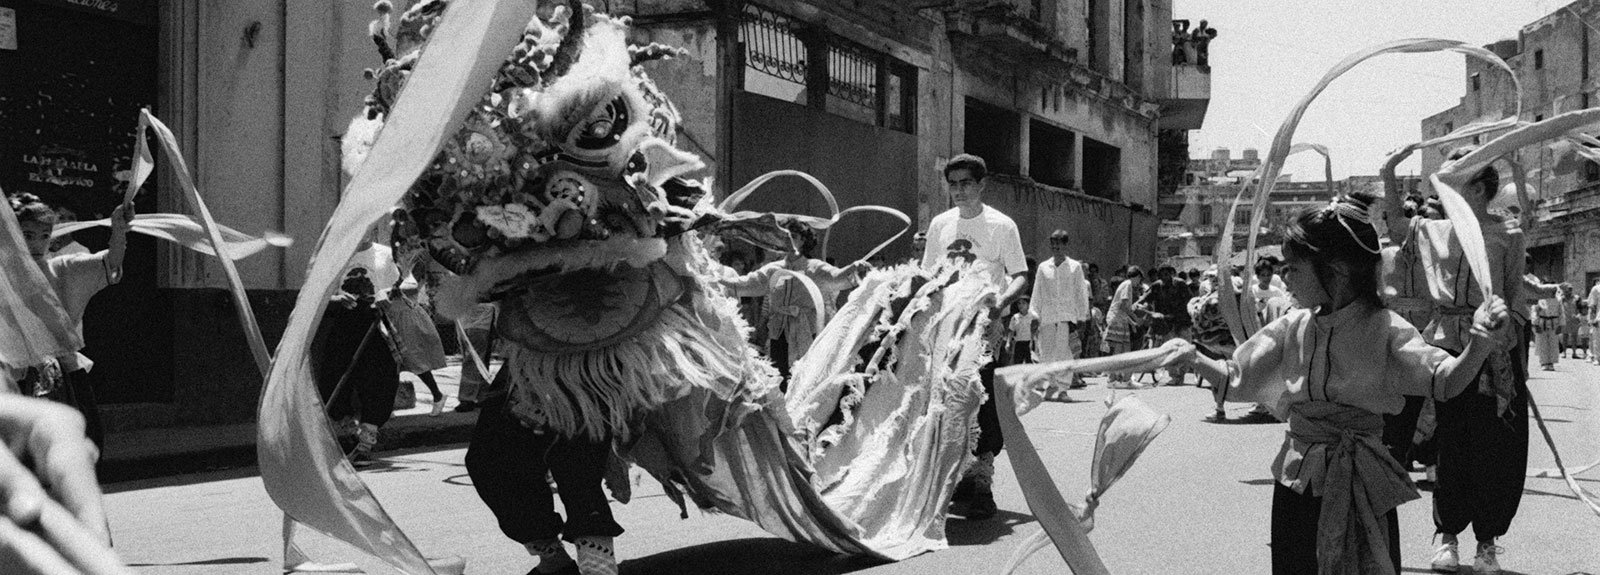 Chinatown, parade with dragons and marcial arts , black and white picture